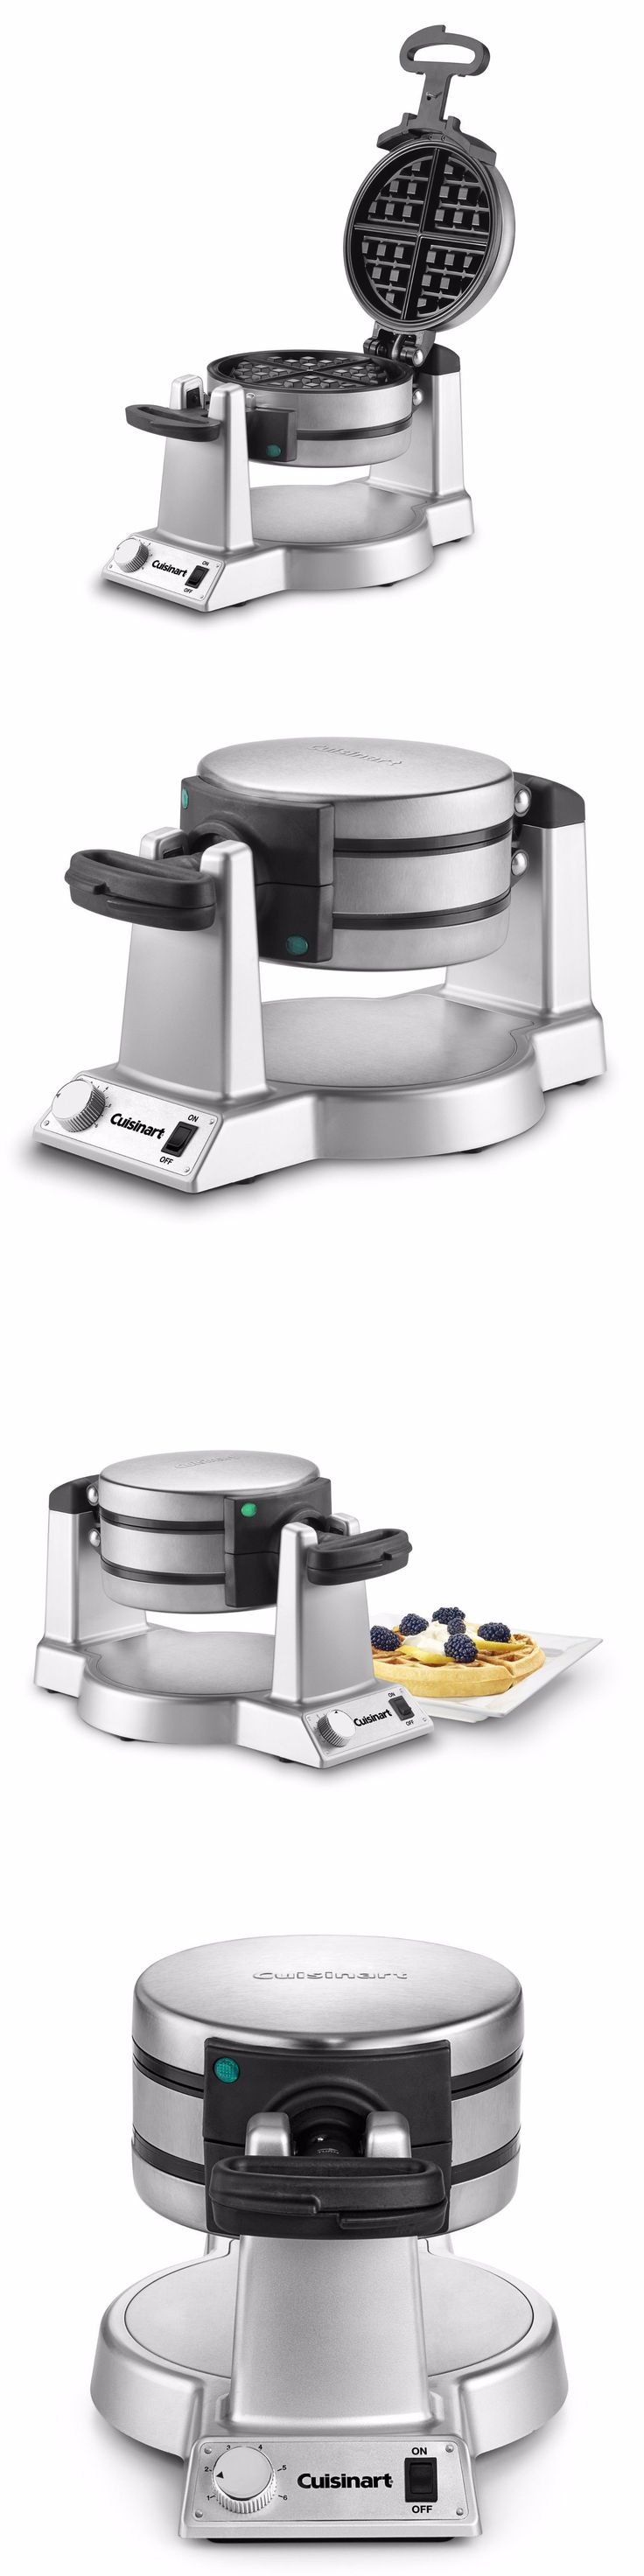 Waffle Makers 168763: Double Belgian Waffle Maker Commercial Waring Pro Iron Gourmet Baker Breakfast -> BUY IT NOW ONLY: $115.95 on eBay!